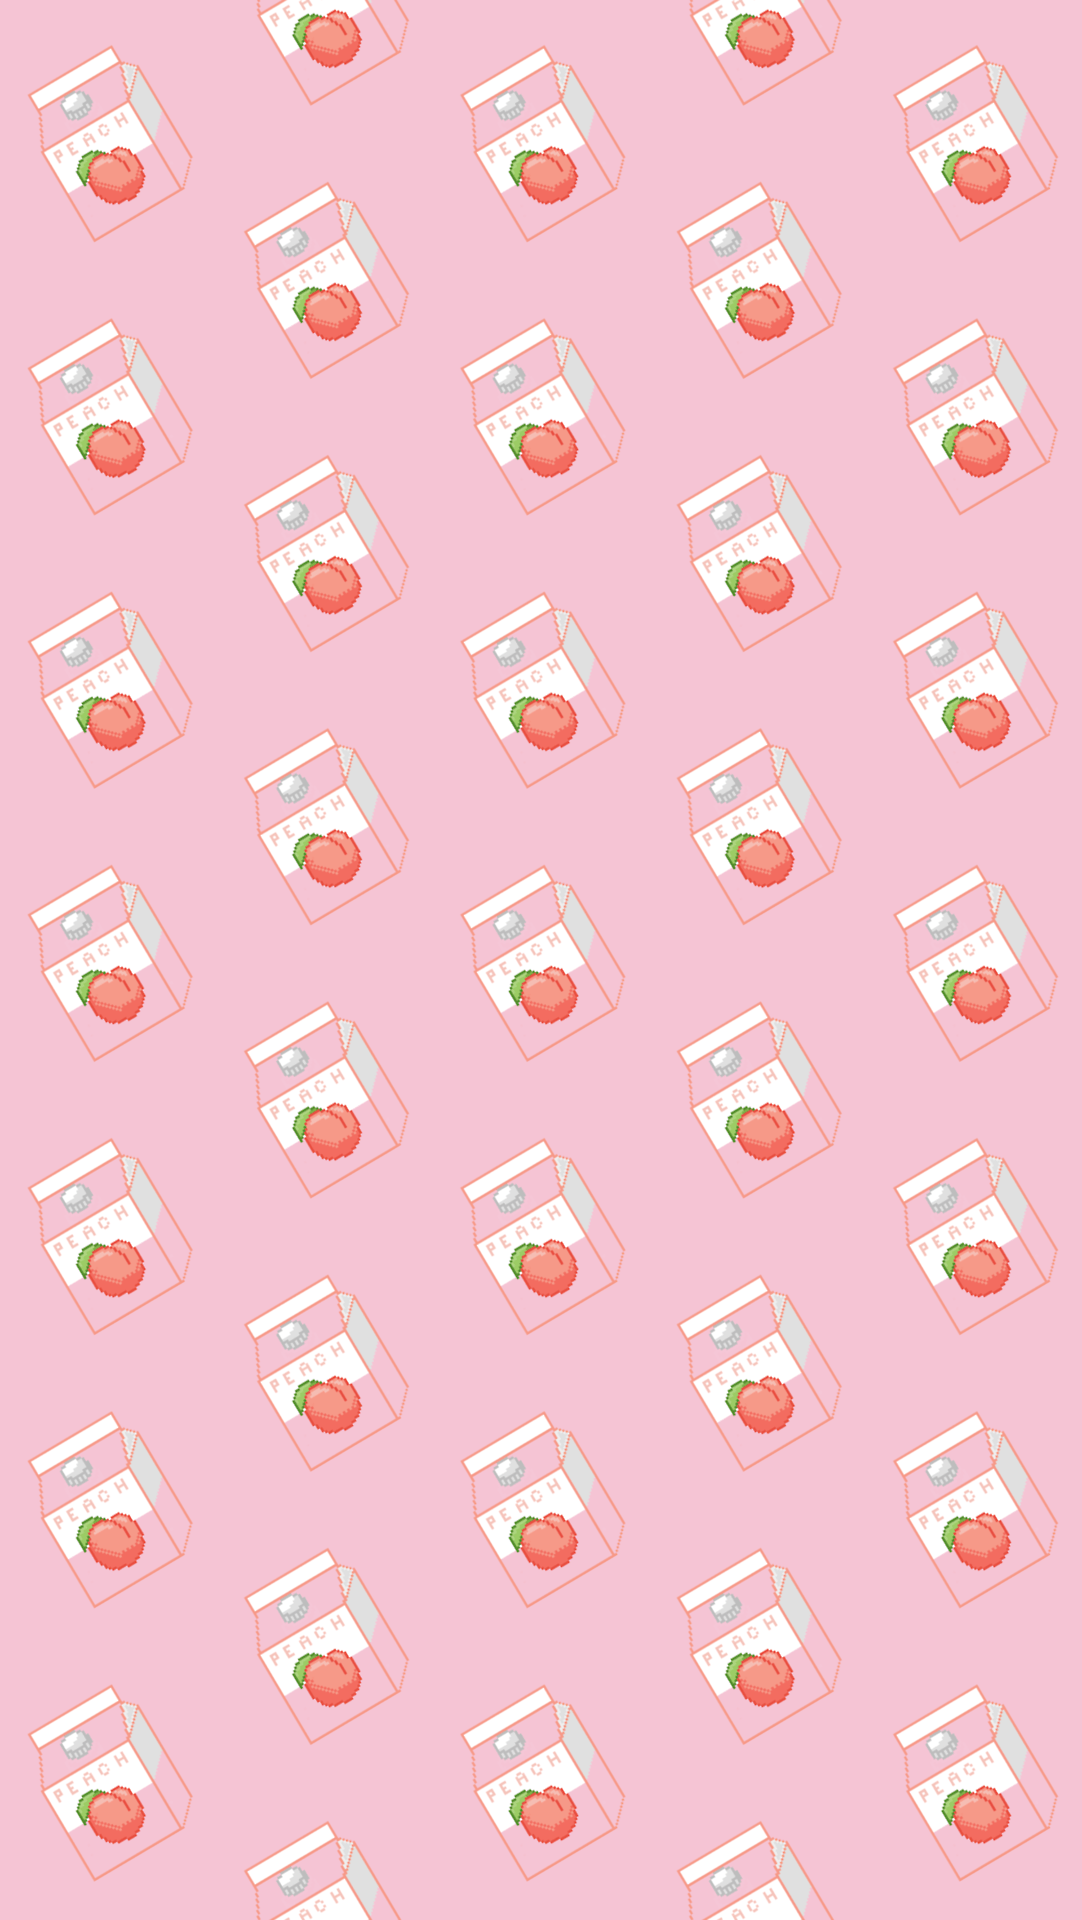 peach aesthetic iphone wallpapers on wallpaperdog peach aesthetic iphone wallpapers on